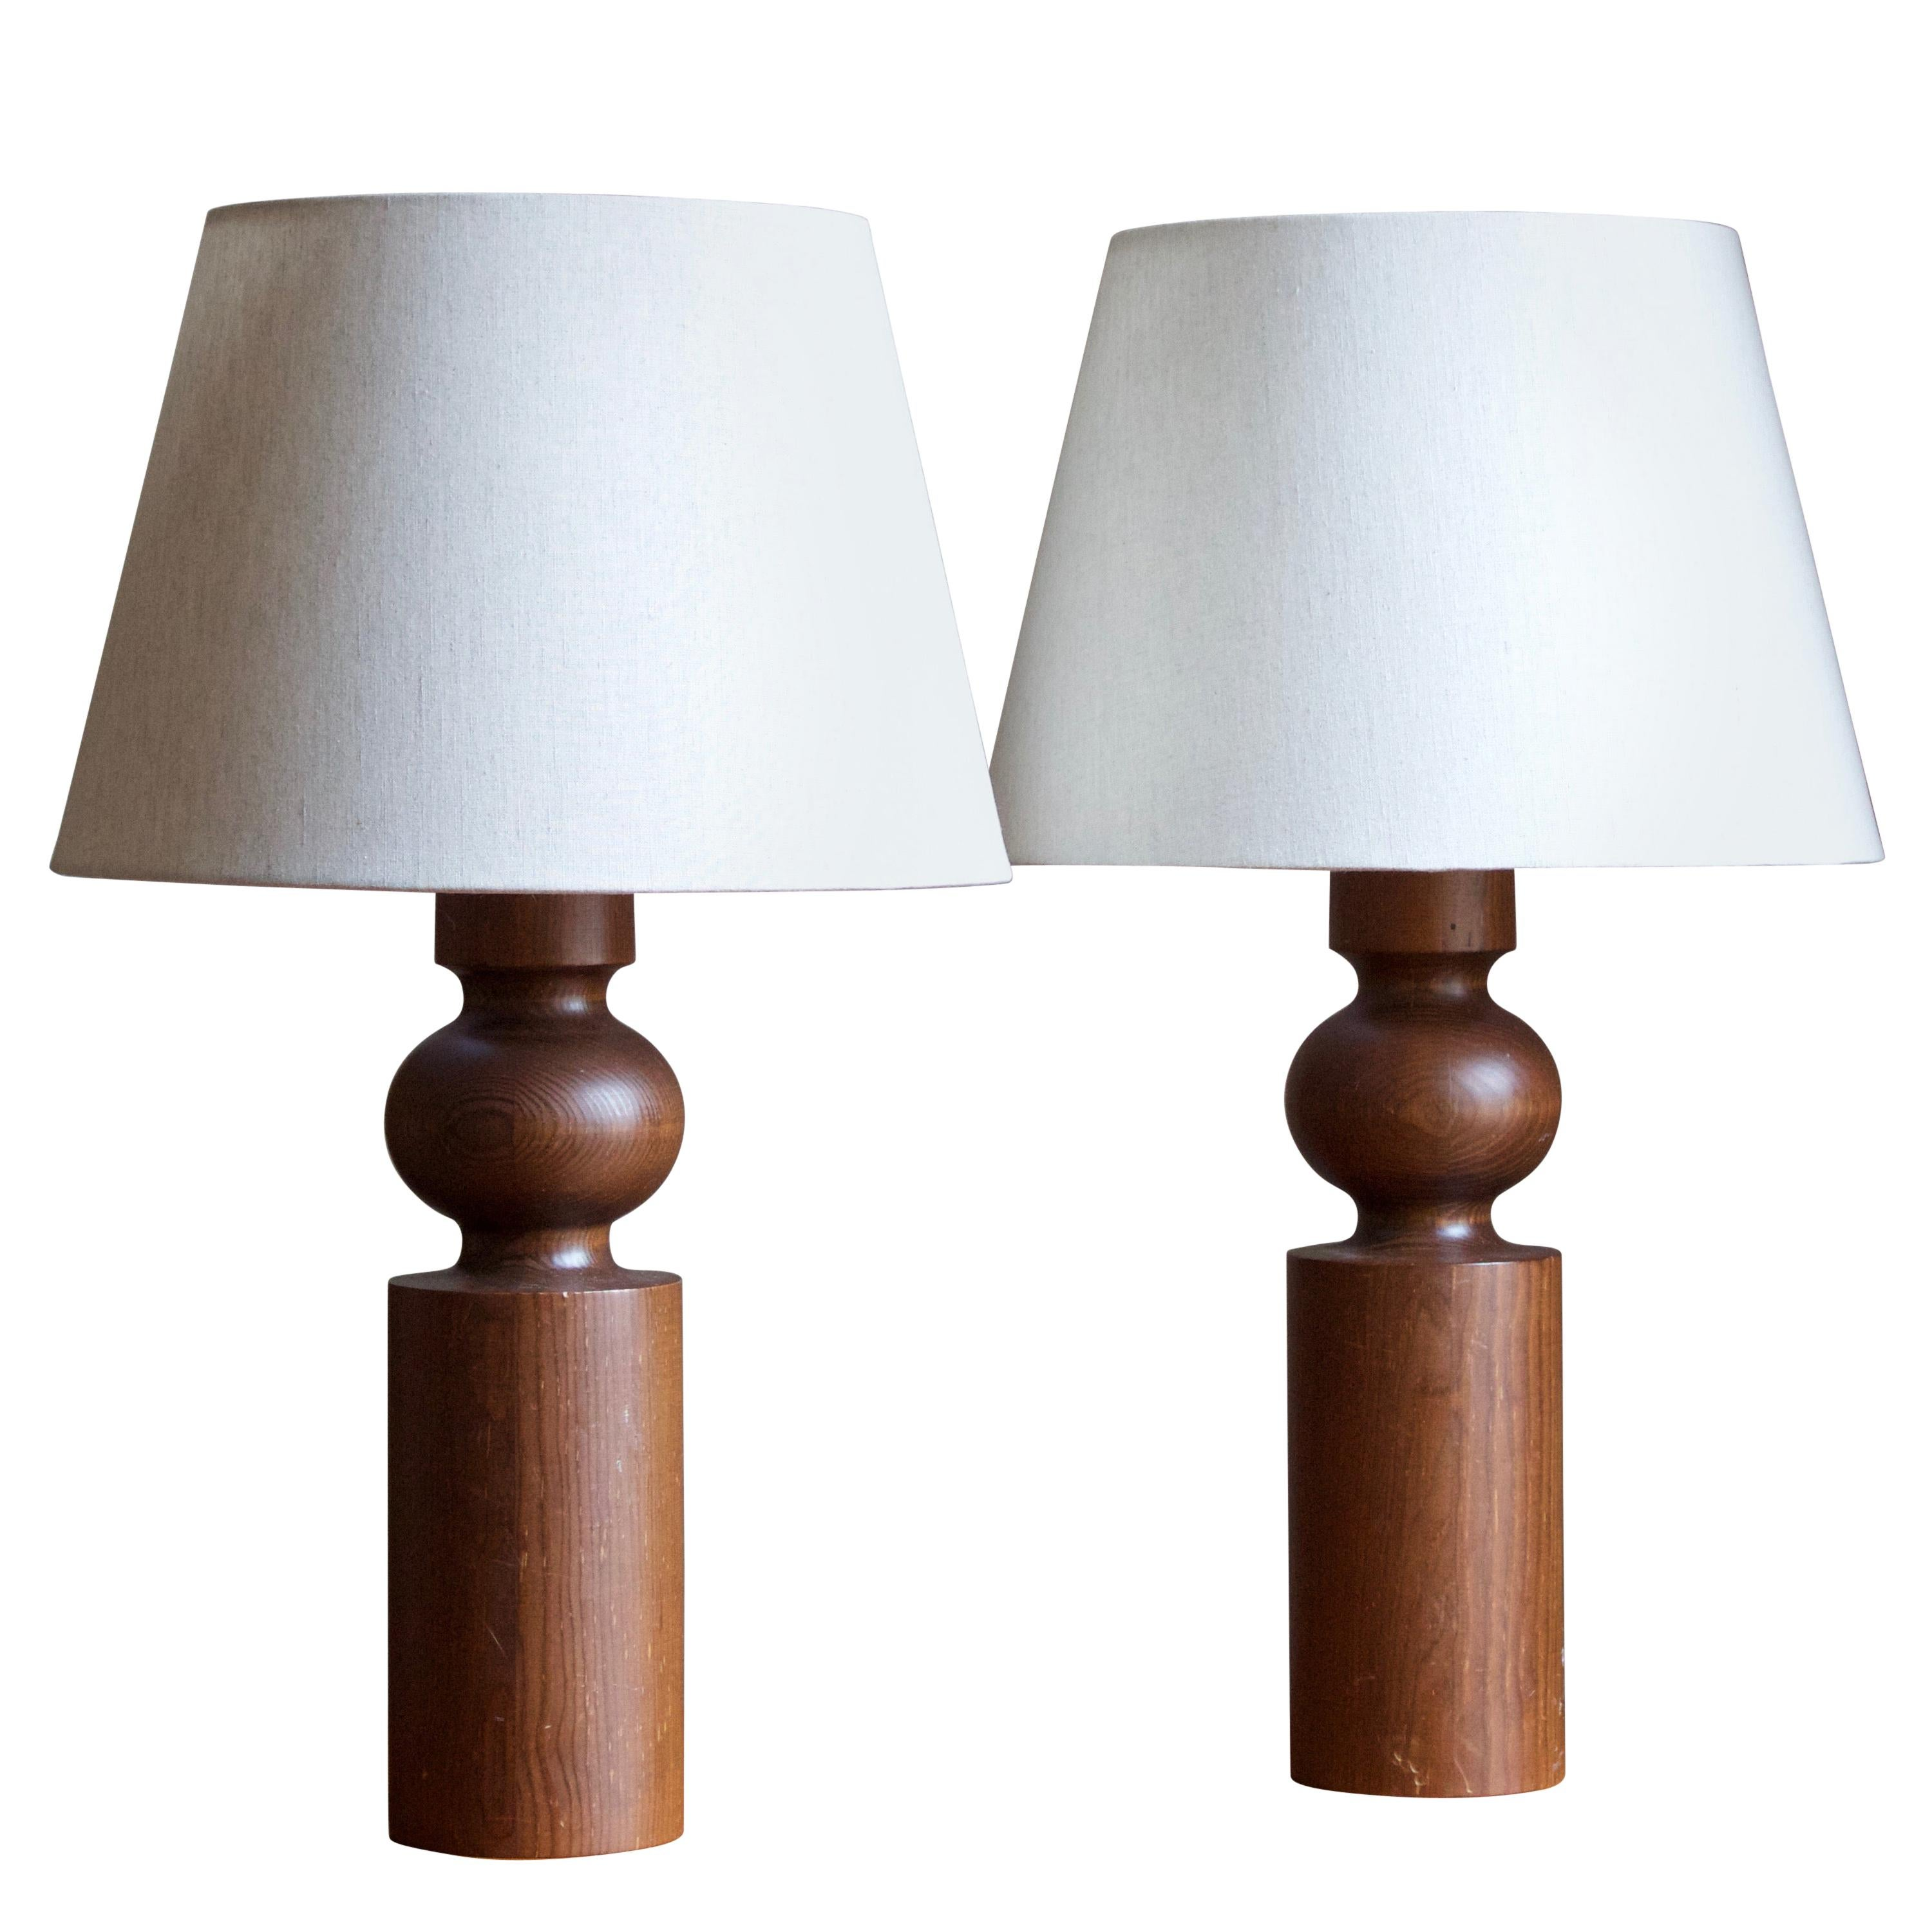 Uno Kristiansson, Table Lamps, Stained Solid Pine, Luxus, Sweden, 1960s